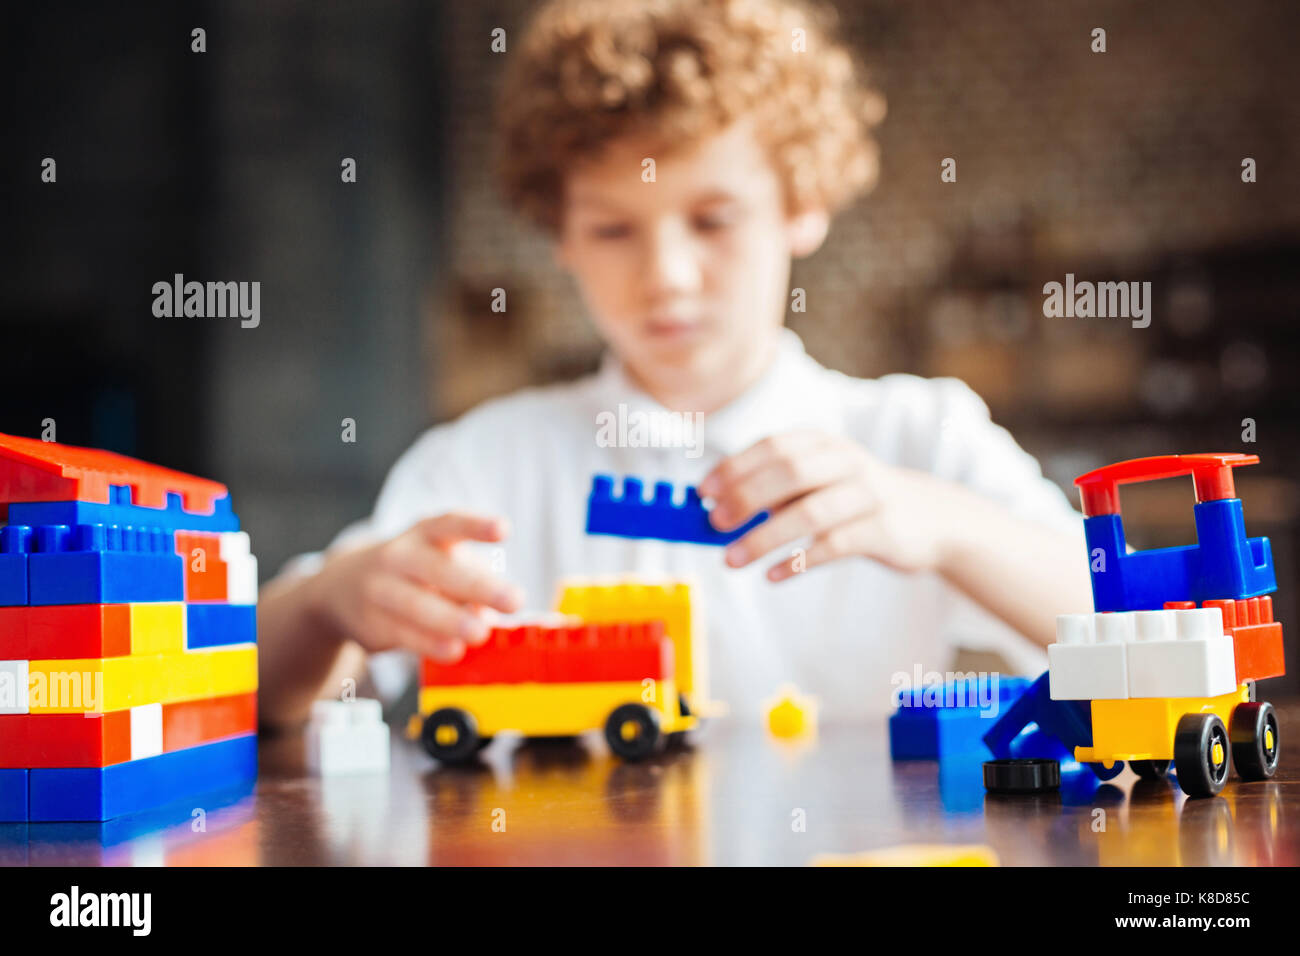 Preteen boy playing with colorful building blocks - Stock Image